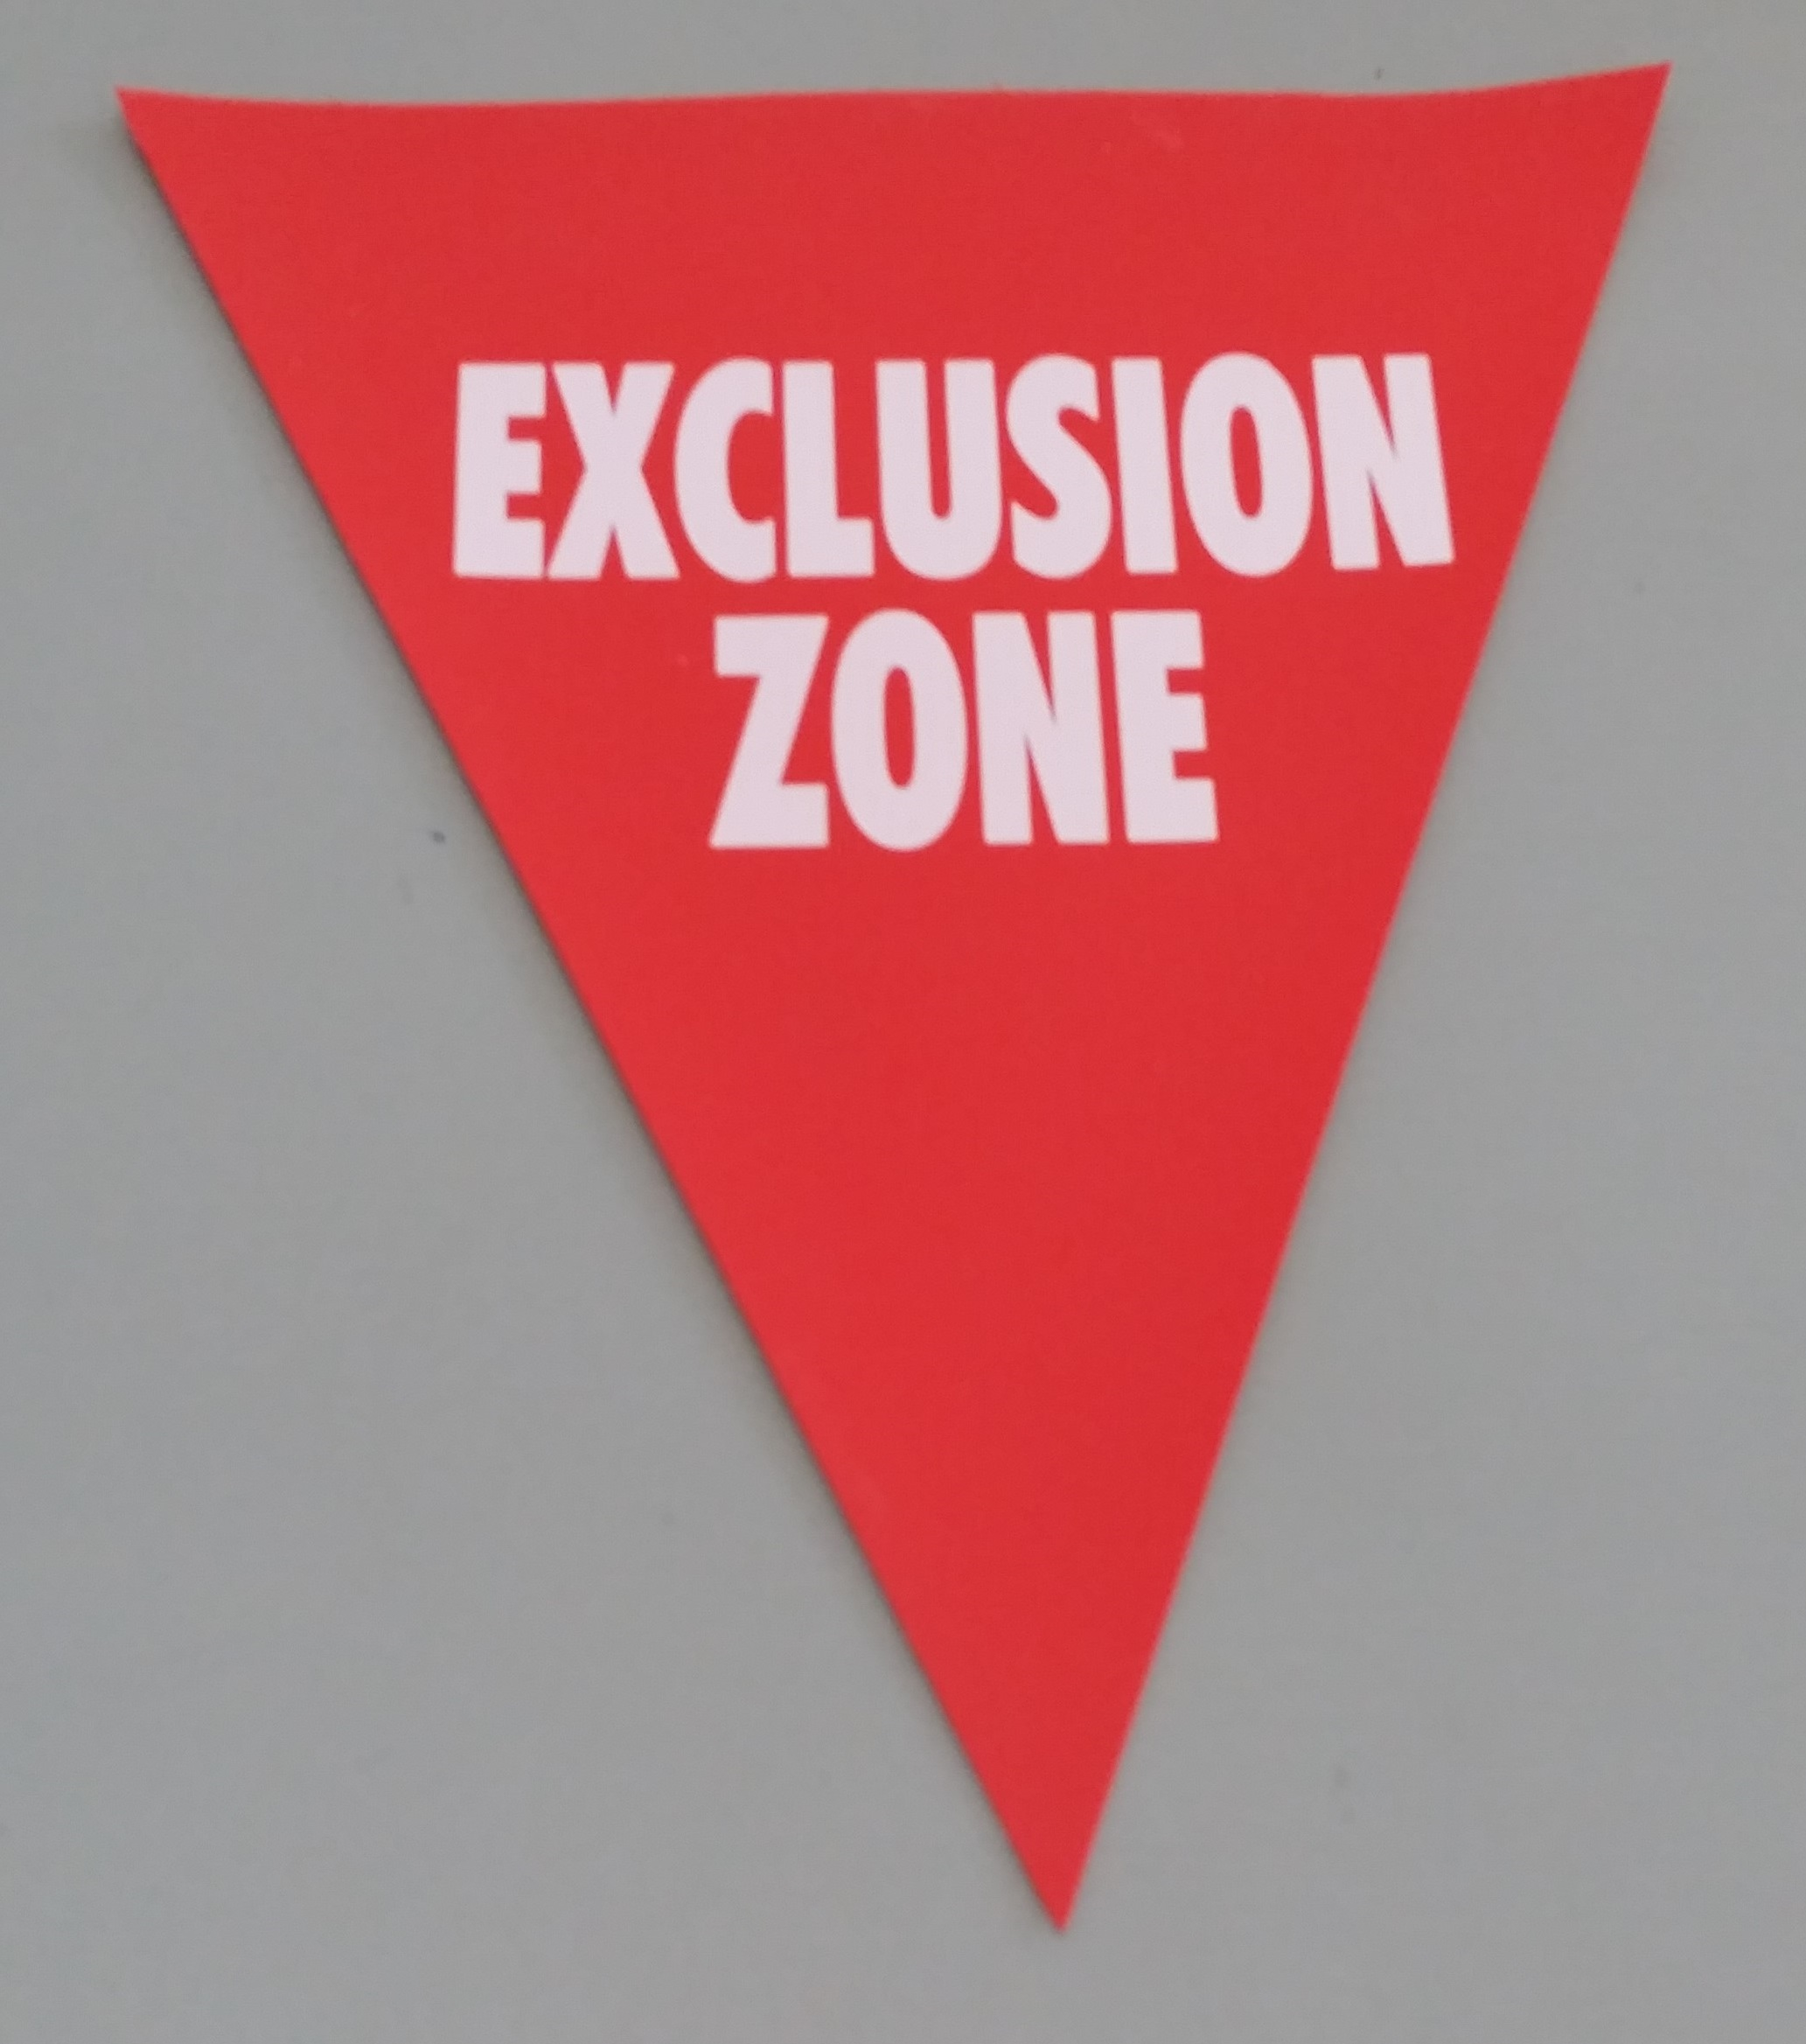 Exclusion Zone (red with white print)